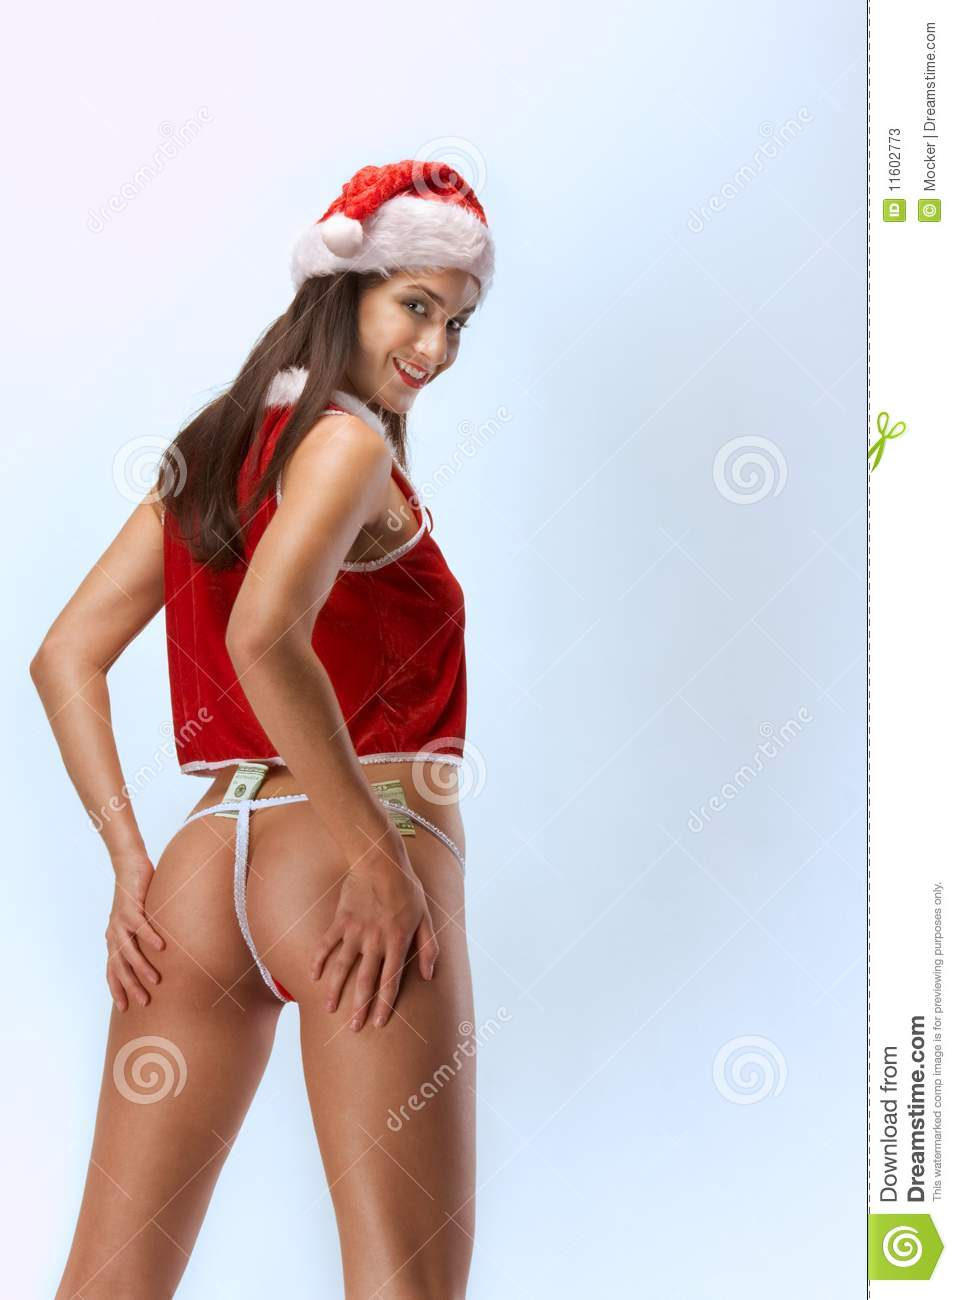 Think, that adult santa claus stripper video remarkable, this